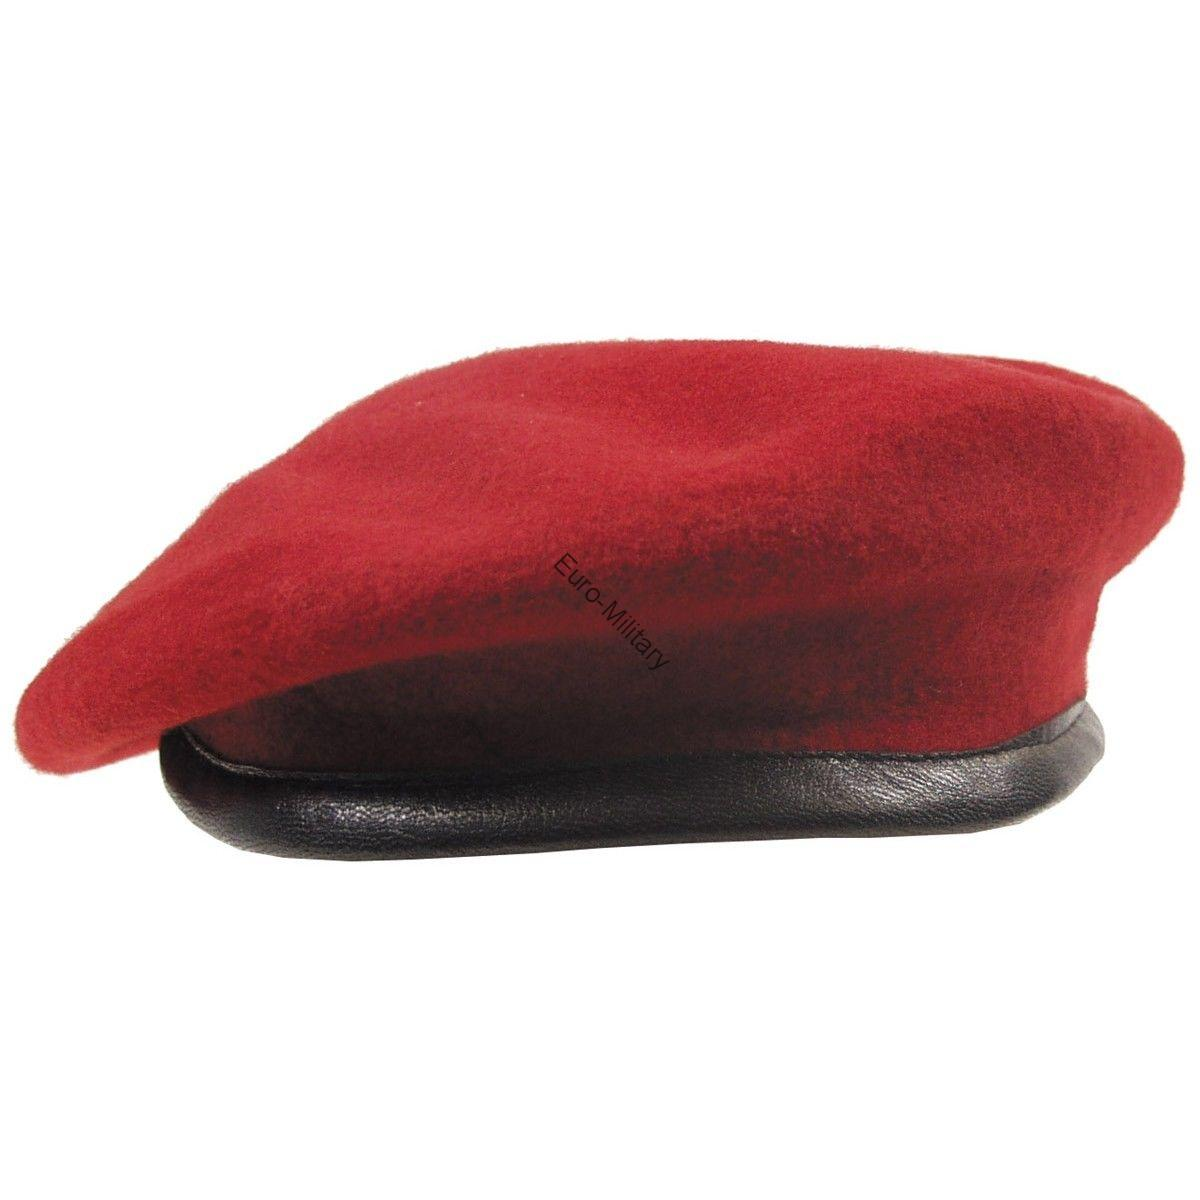 BW German Army High Quality Special Commando Unit Red Beret - Wool